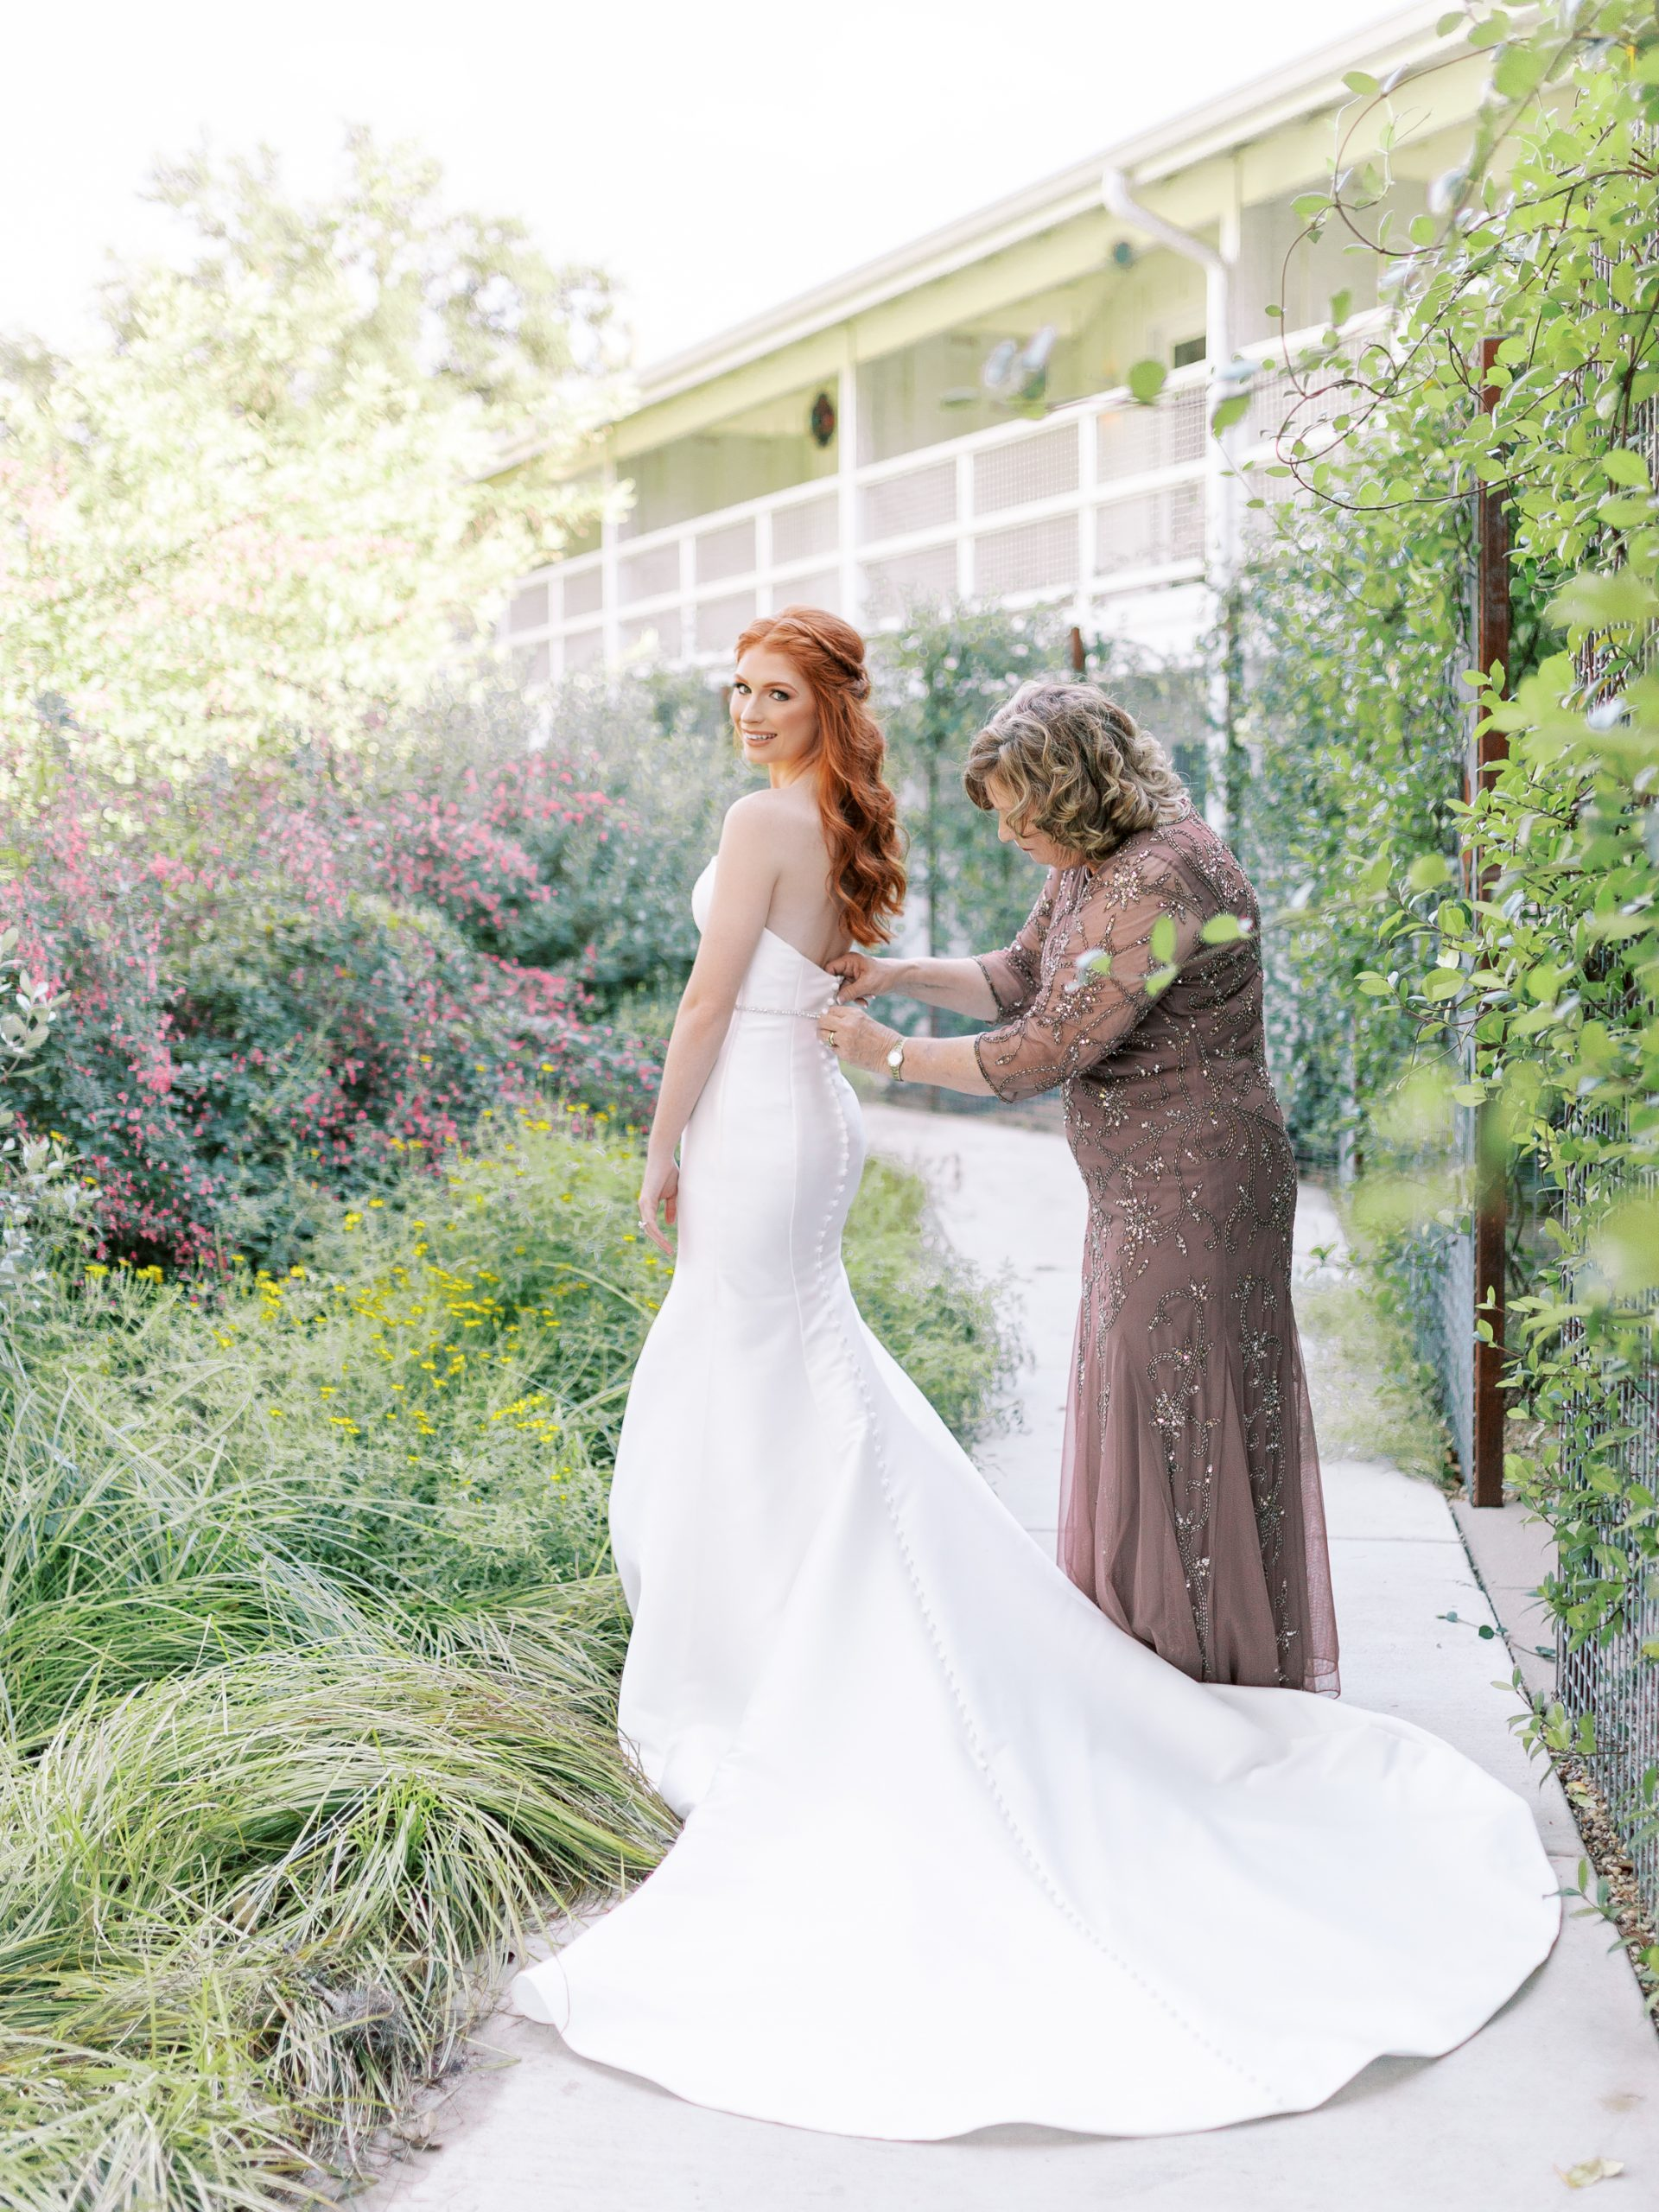 mom and bride putting on the bride's dress in garden